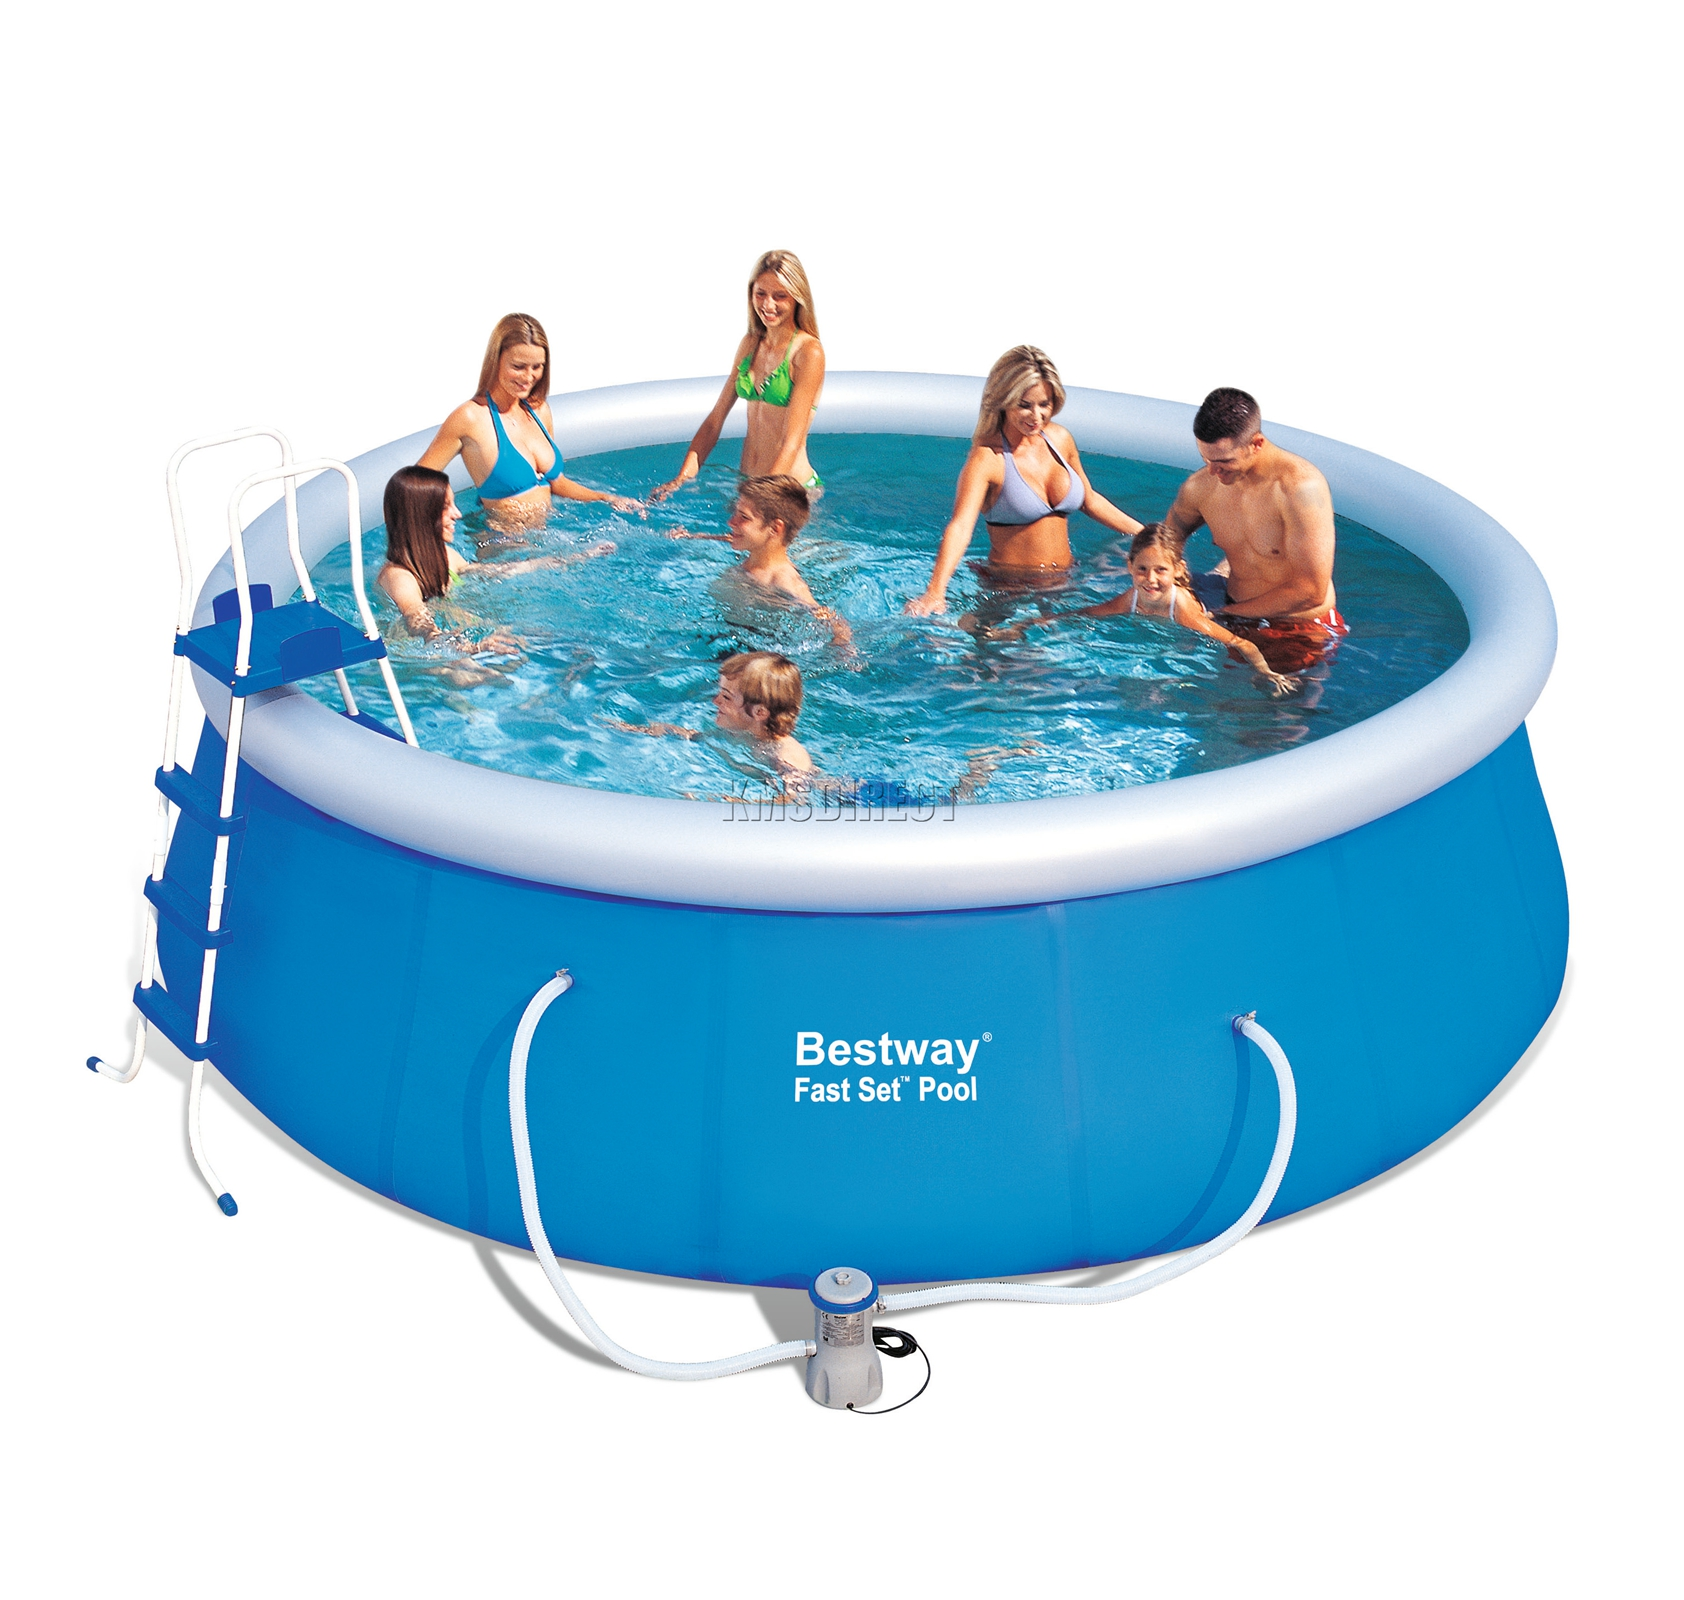 Bestway Fast Set Swimming Pool Round Inflatable Above Ground 15ft X 48inch 57289 Ebay